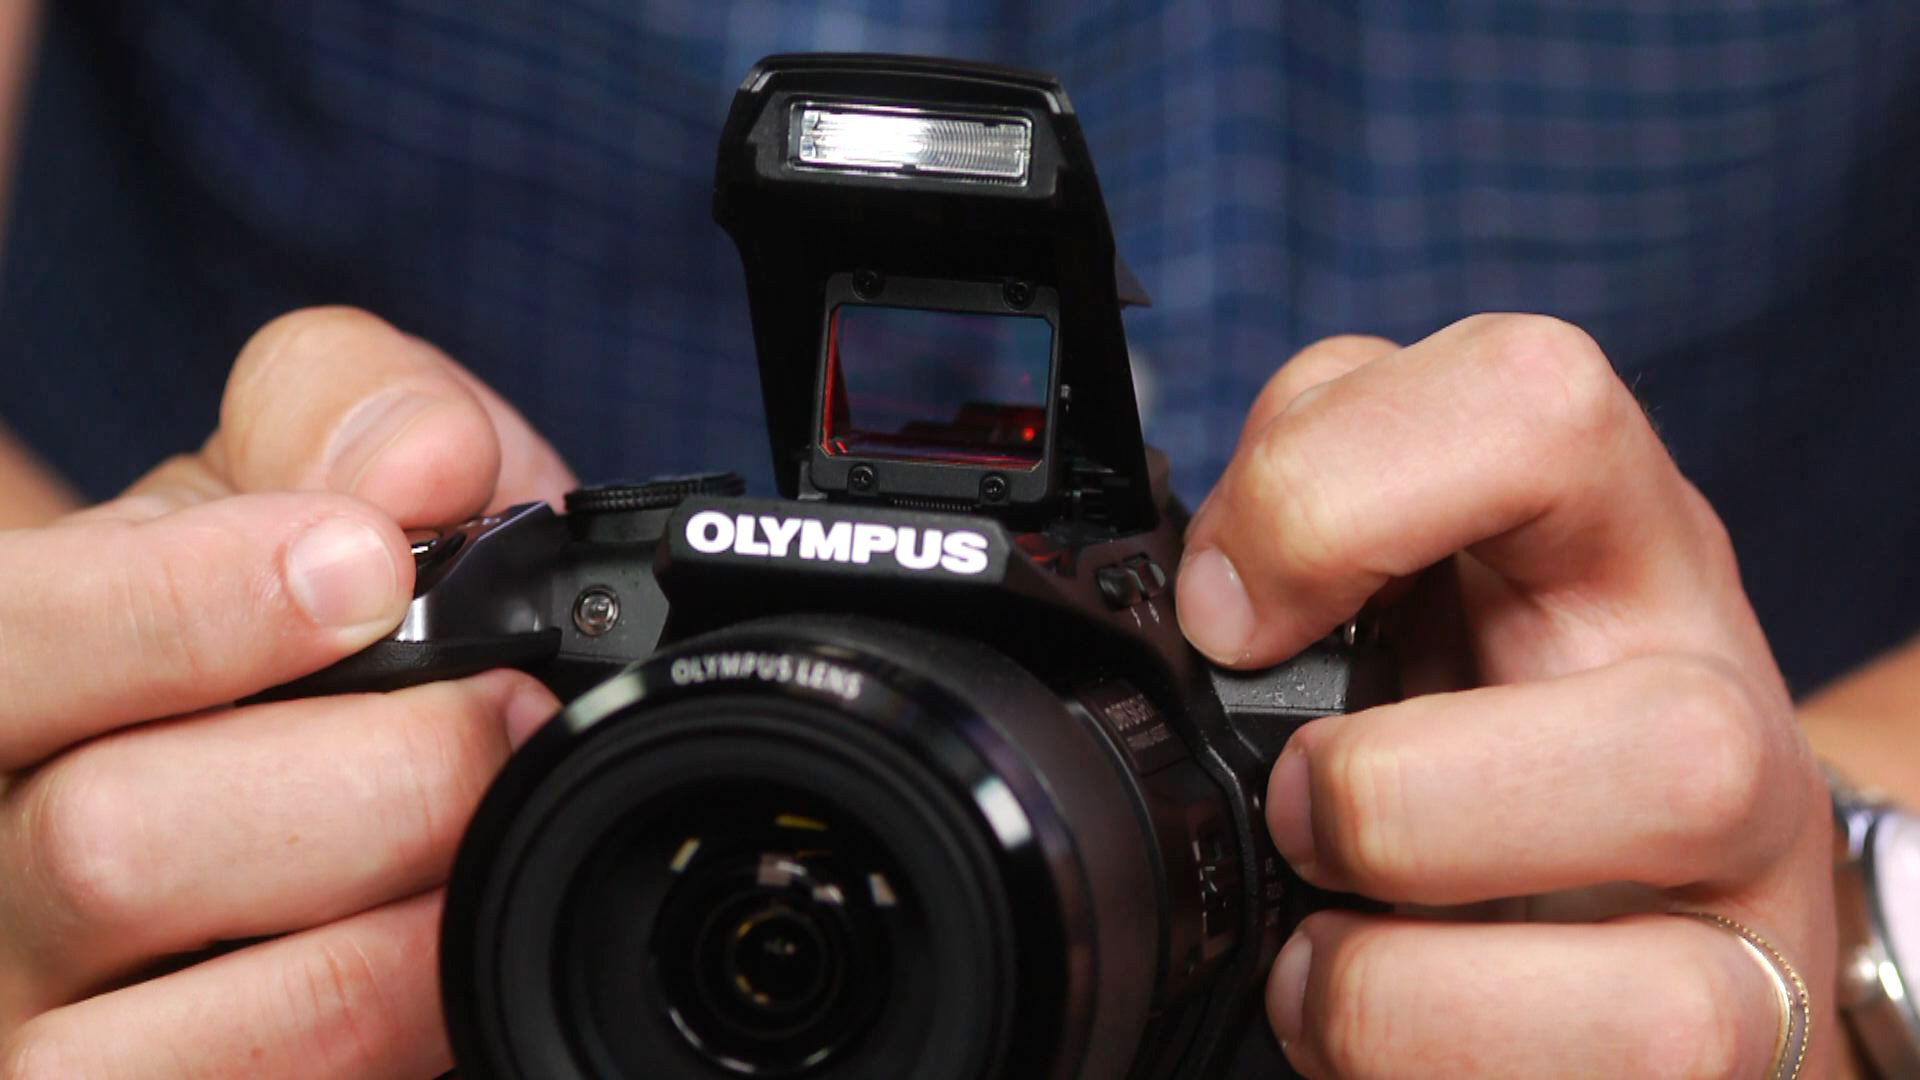 Video: Zero in on your subject from far, far away with Olympus' Stylus SP-100EE